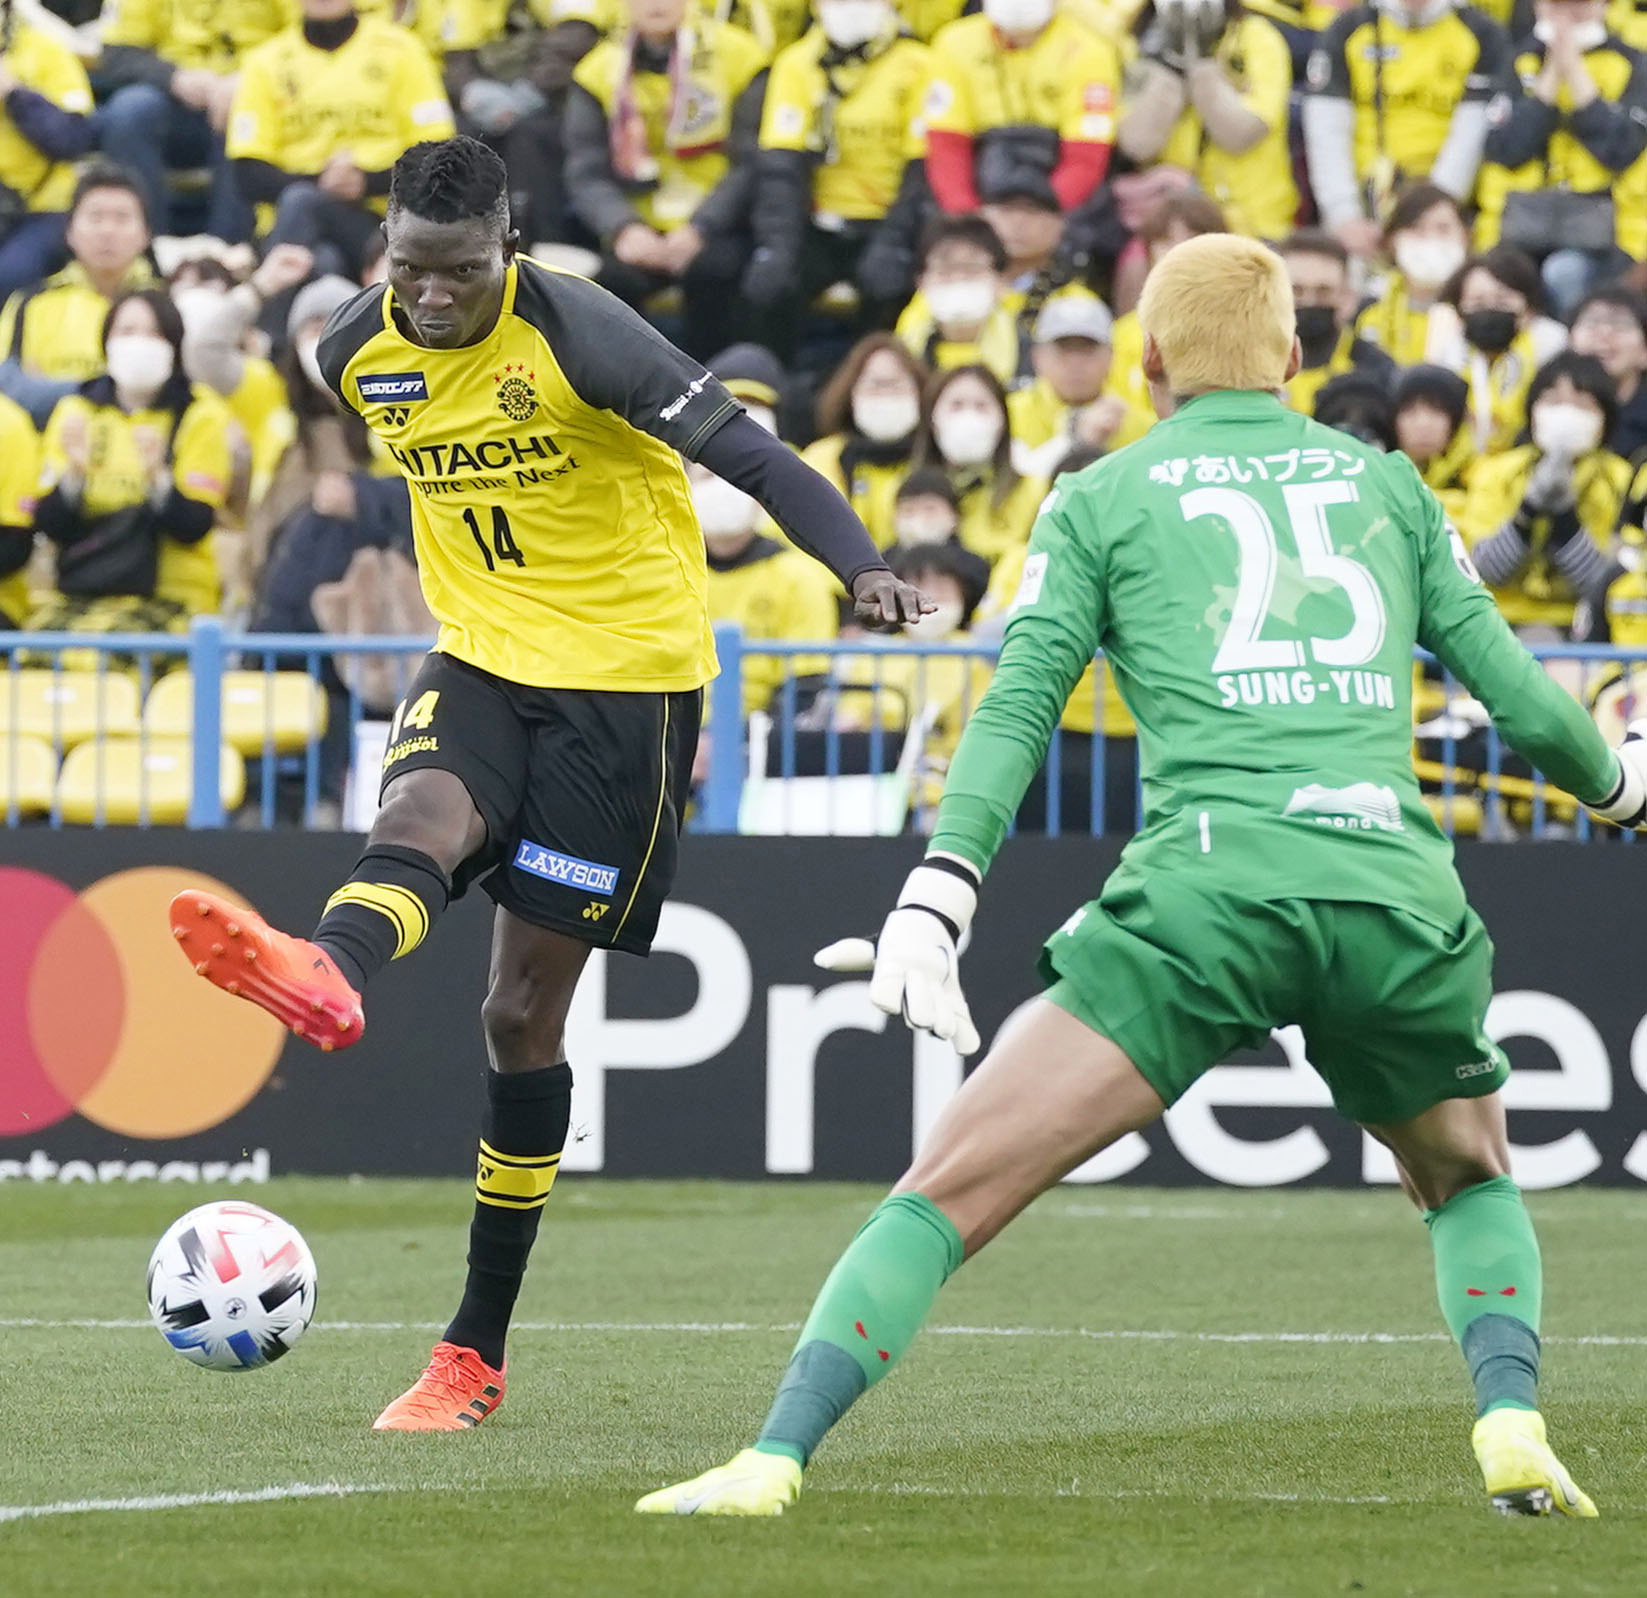 Reyosl striker Michael Olunga (left) scores against Consadole goalkeeper Gu Sung-yun in the first half of their J. League opening-round game on Feb. 22 in Kashiwa, Chiba Prefecture. | KYODO